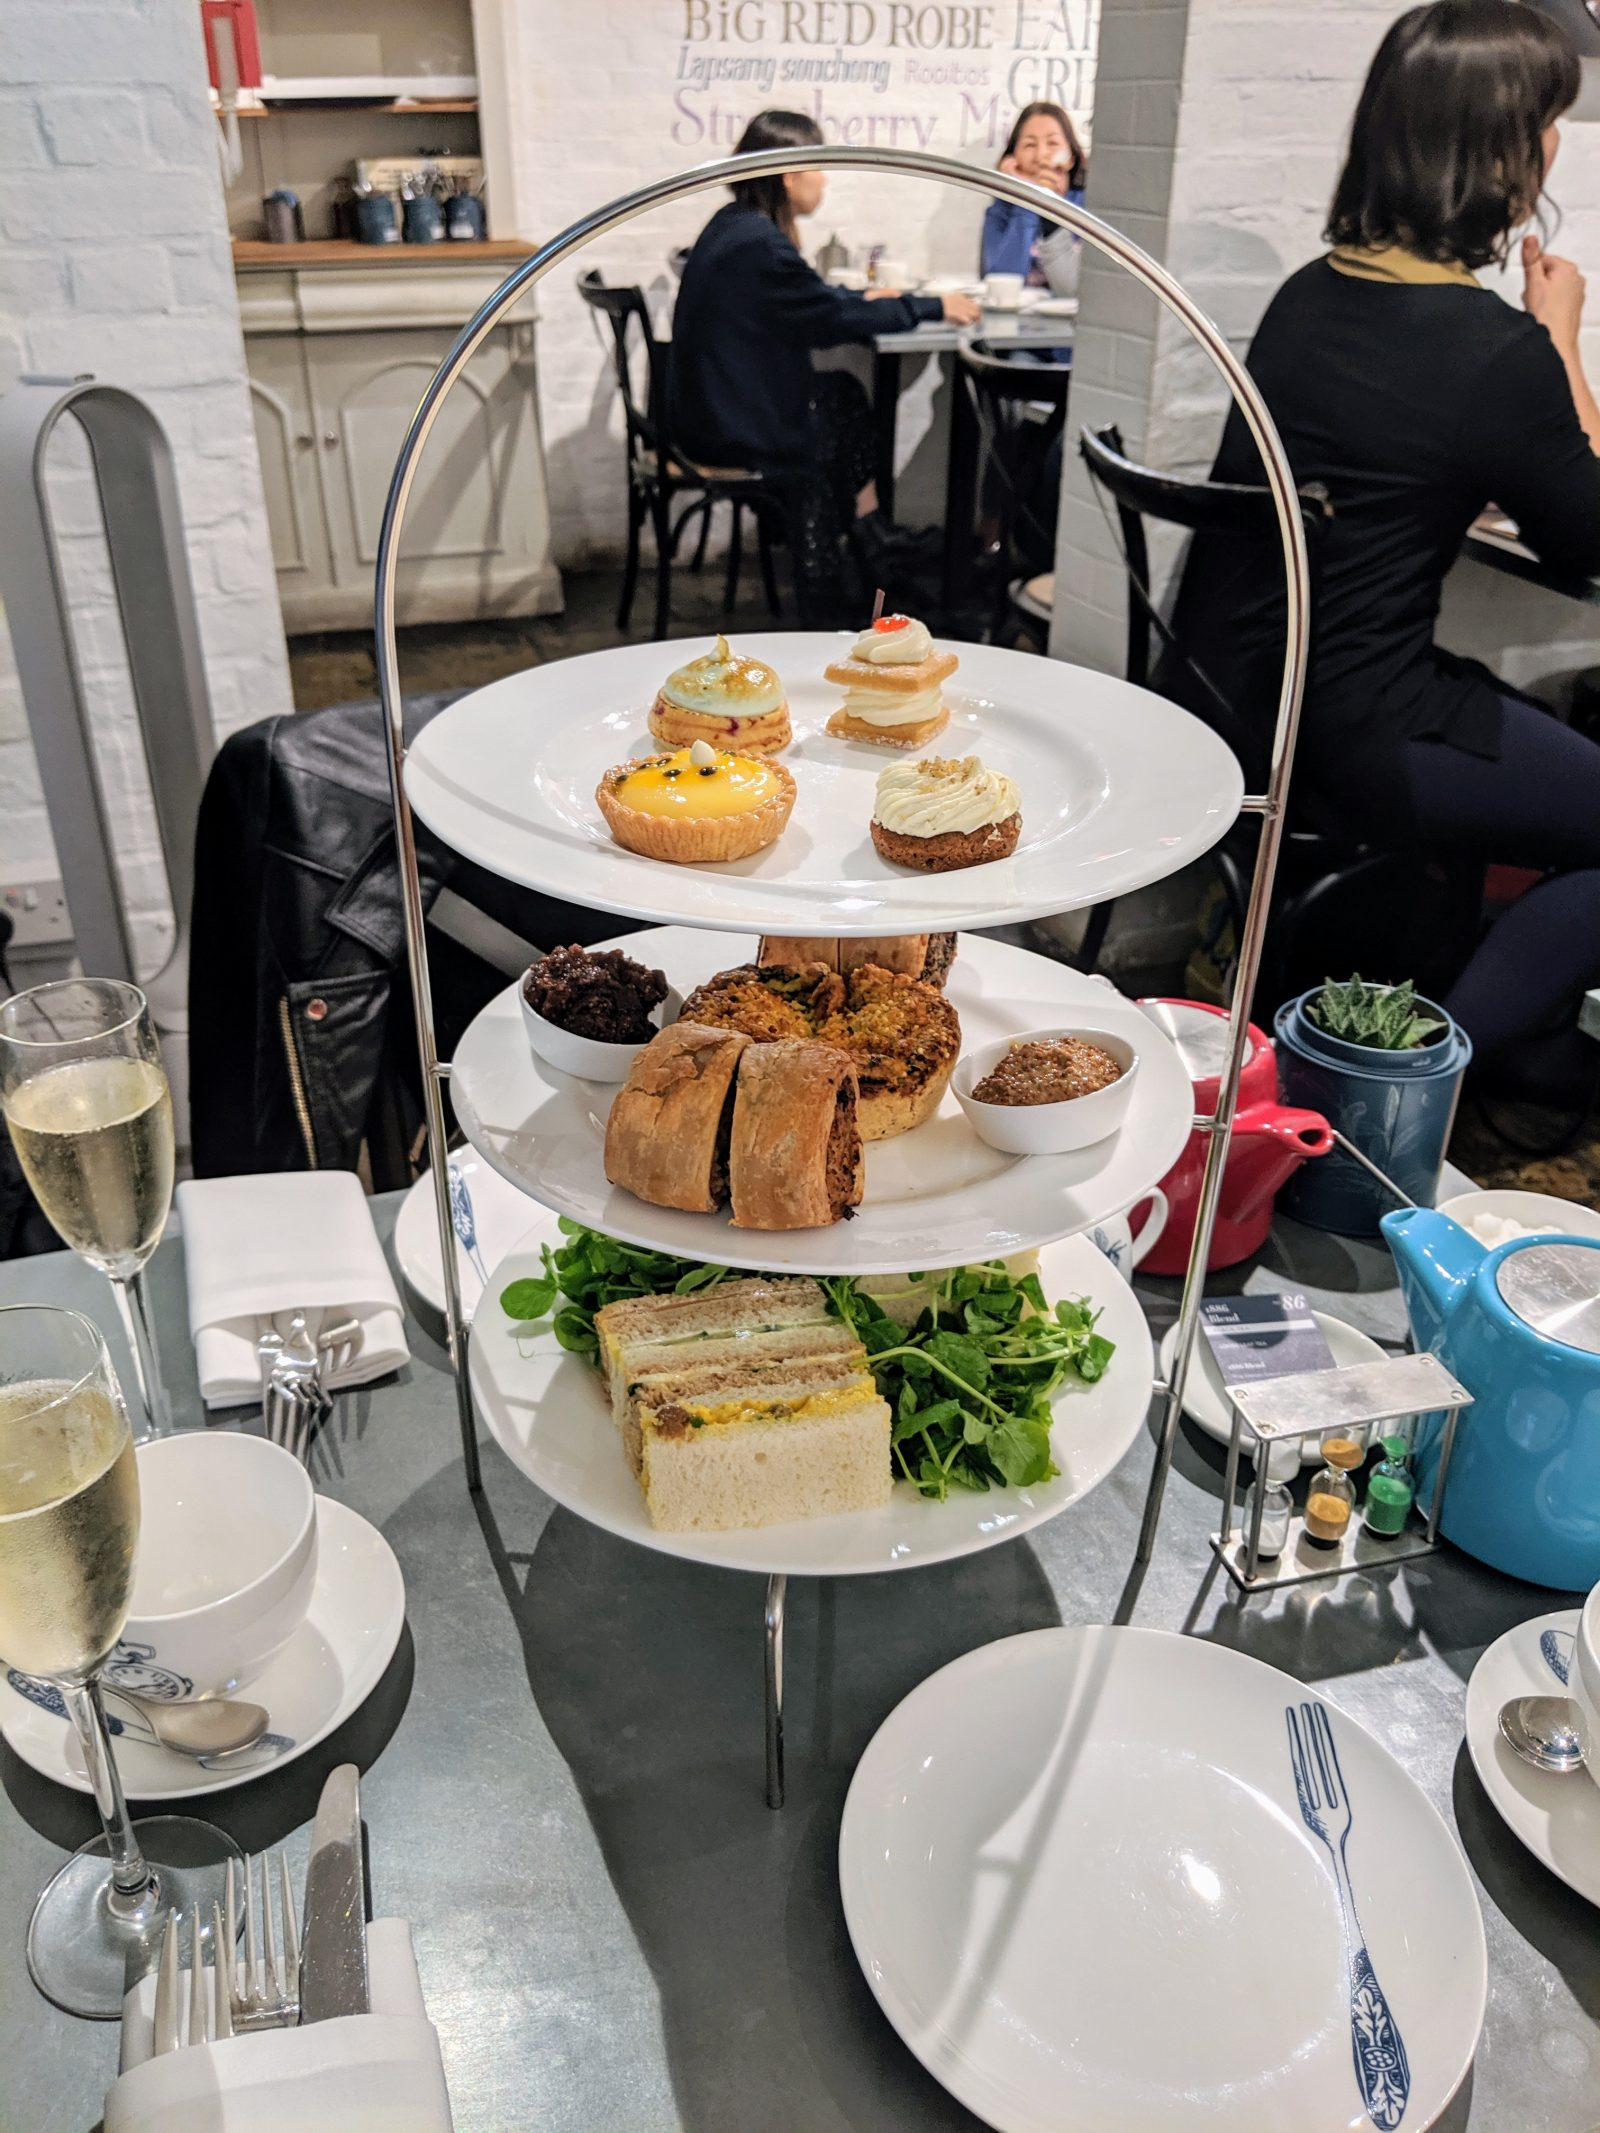 afternoon tea tower tray full of sandwiches, savouries and cakes